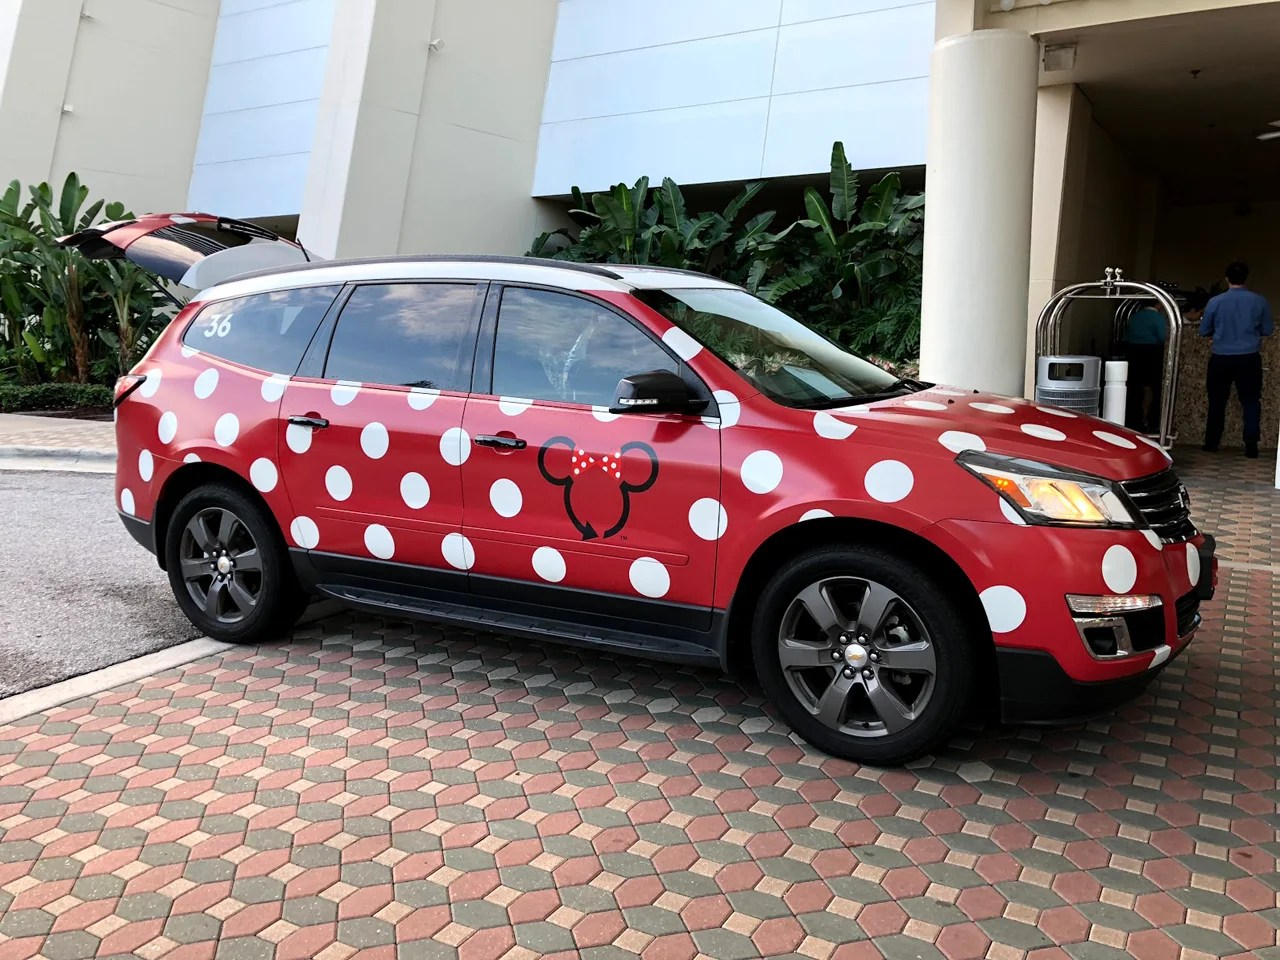 d89f833e9b 6 Things to Know About Disney World s Minnie Vans